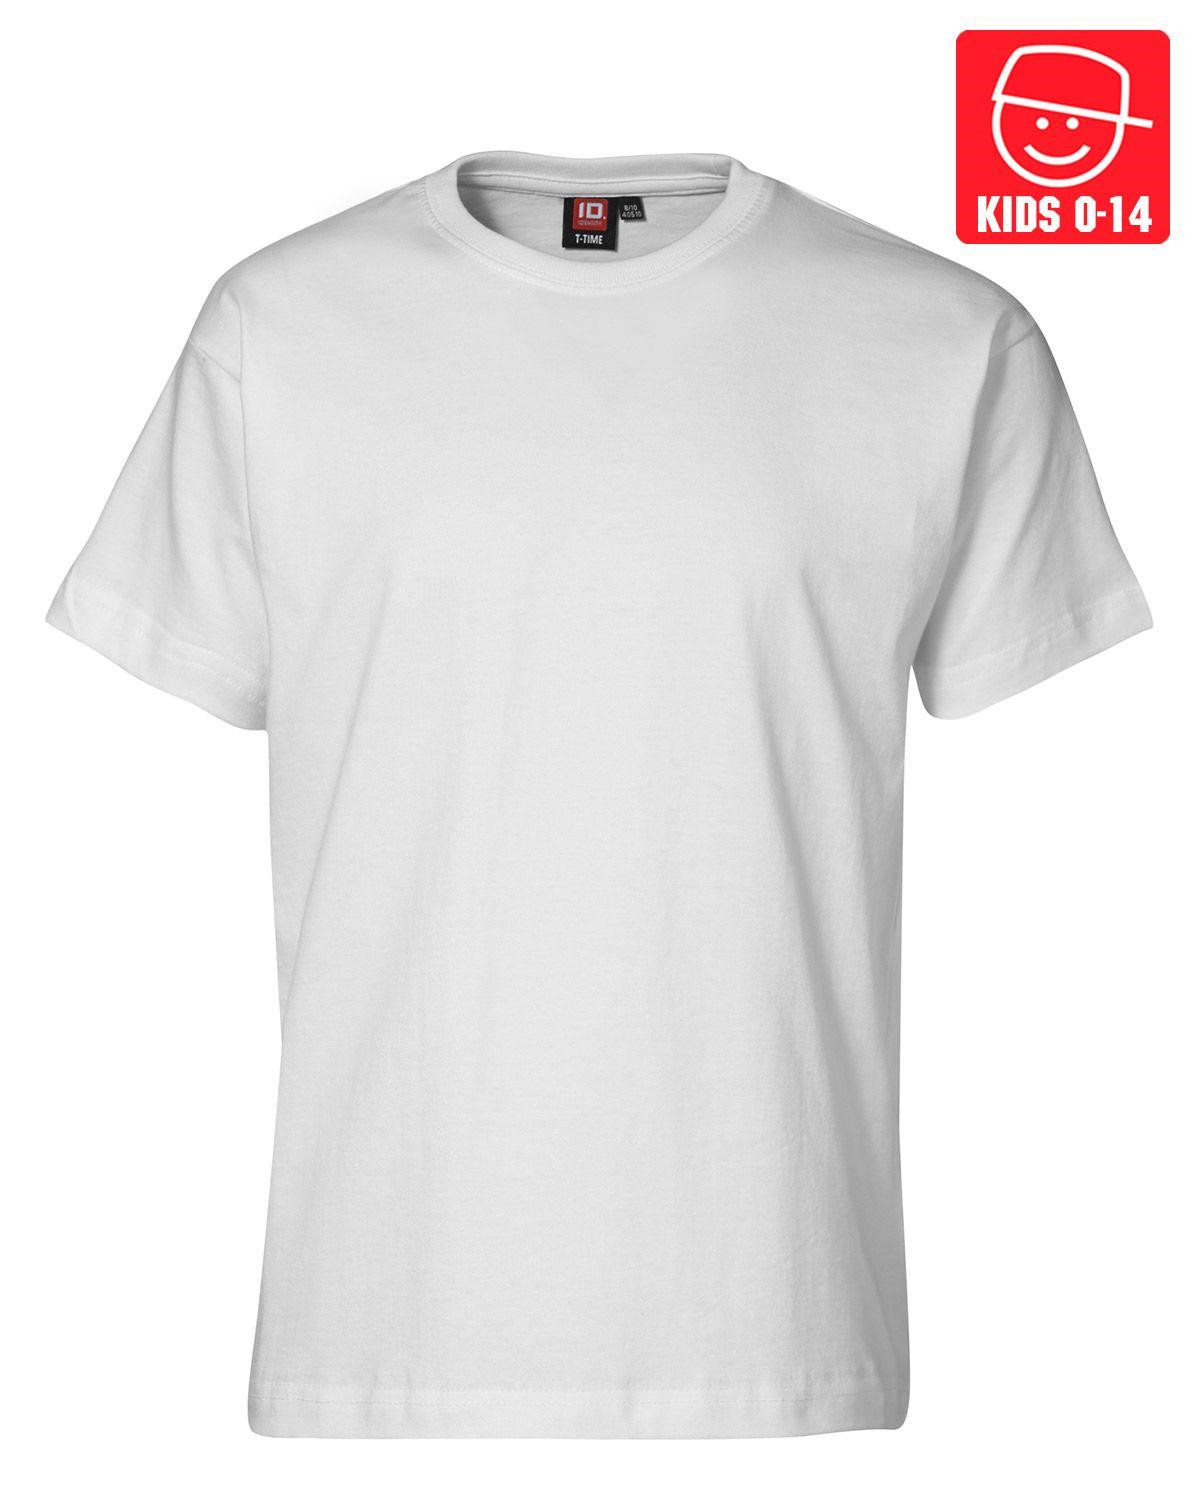 Image of   ID T-TIME T-shirt (Hvid, K122)